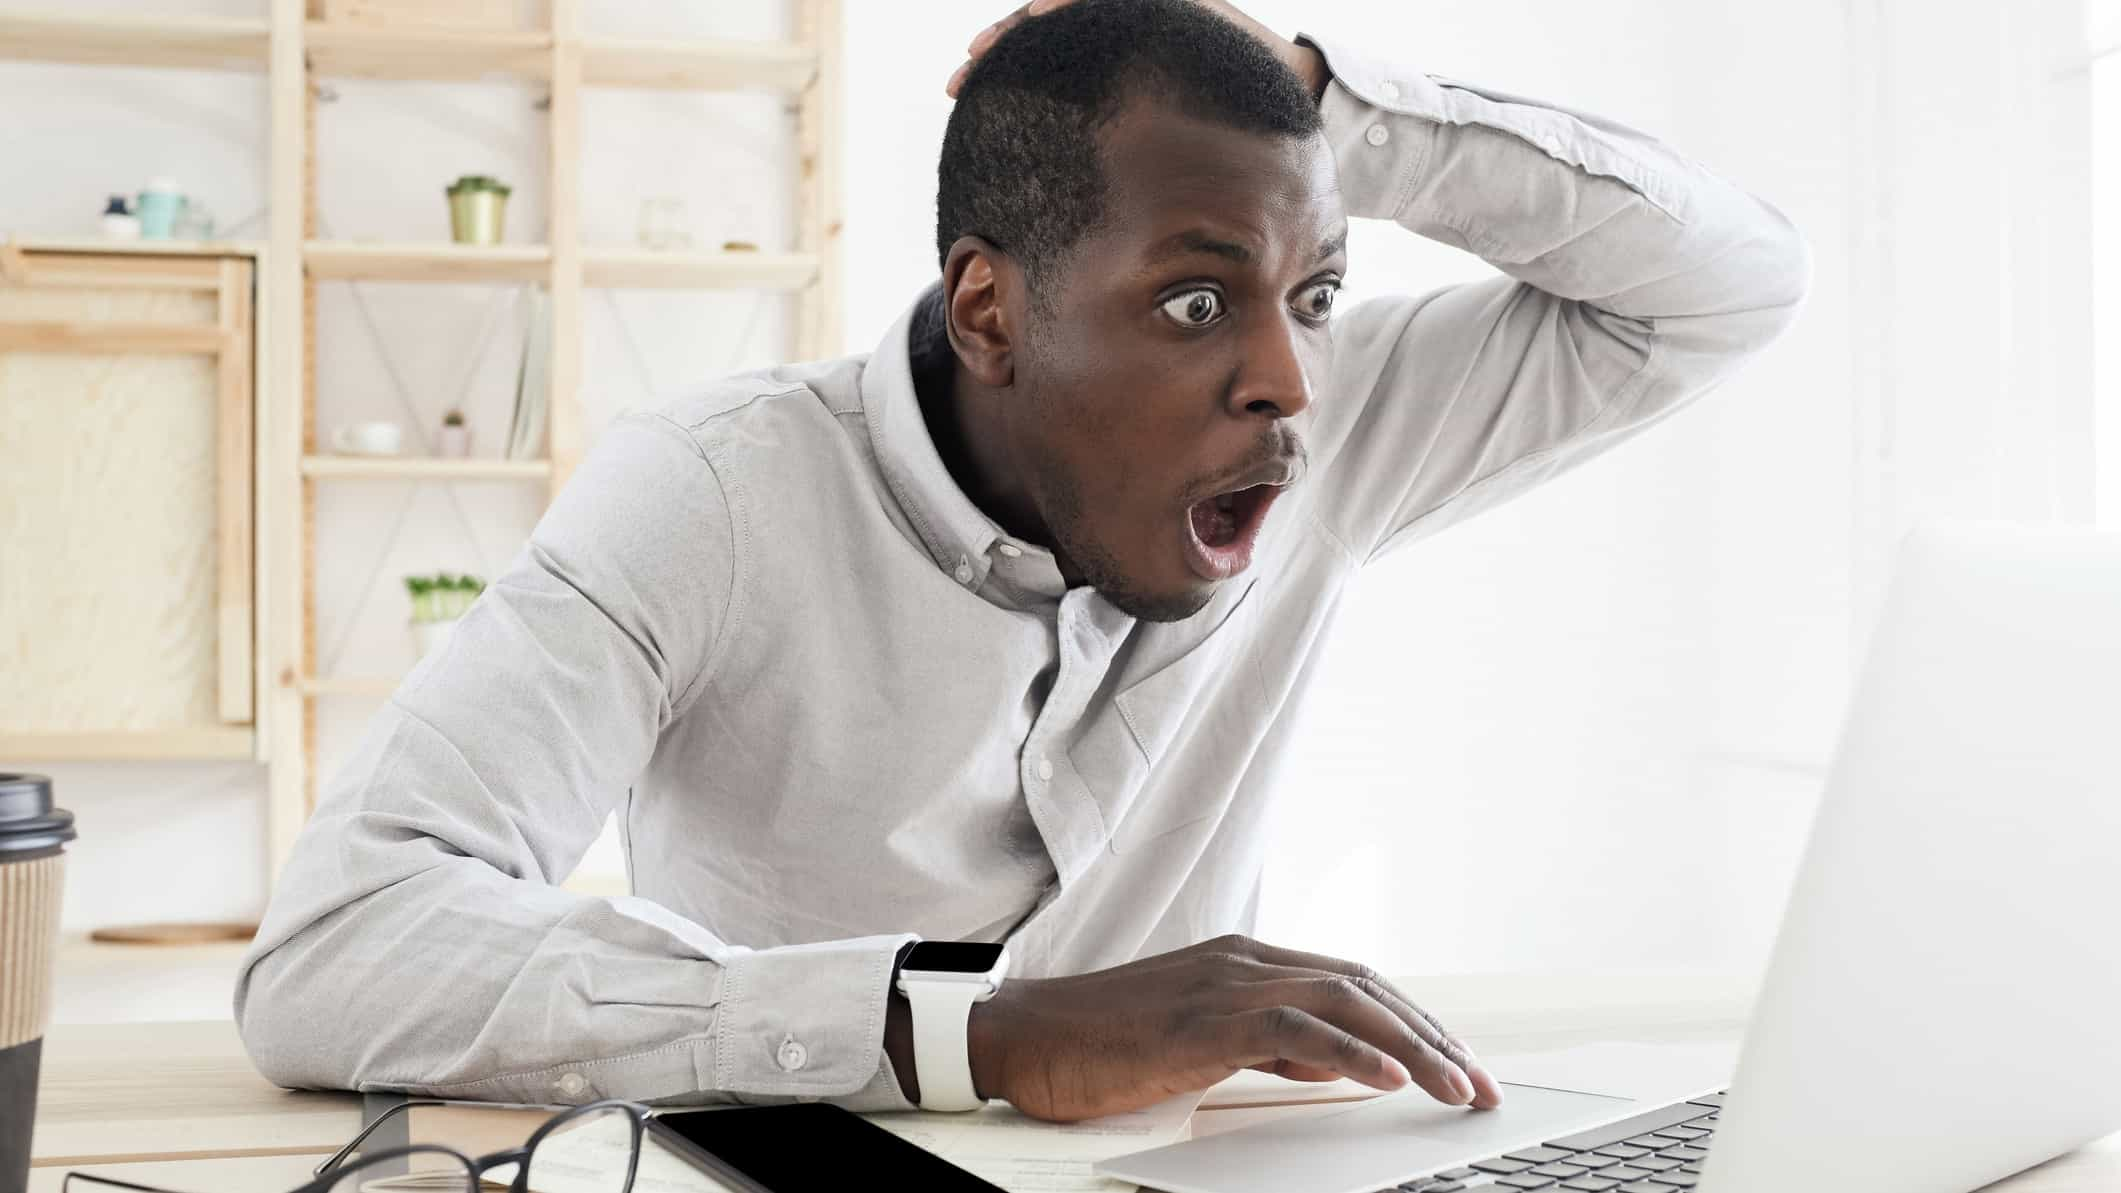 An ASX investor looks devastated as he watches his computer screen, indicating bad news